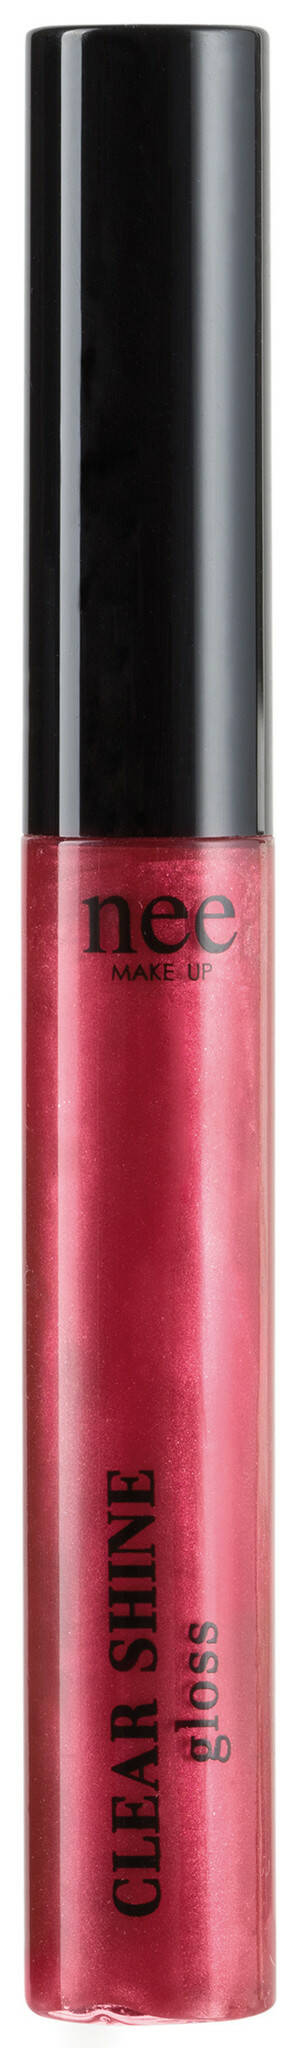 Nee - Clear Shine Gloss